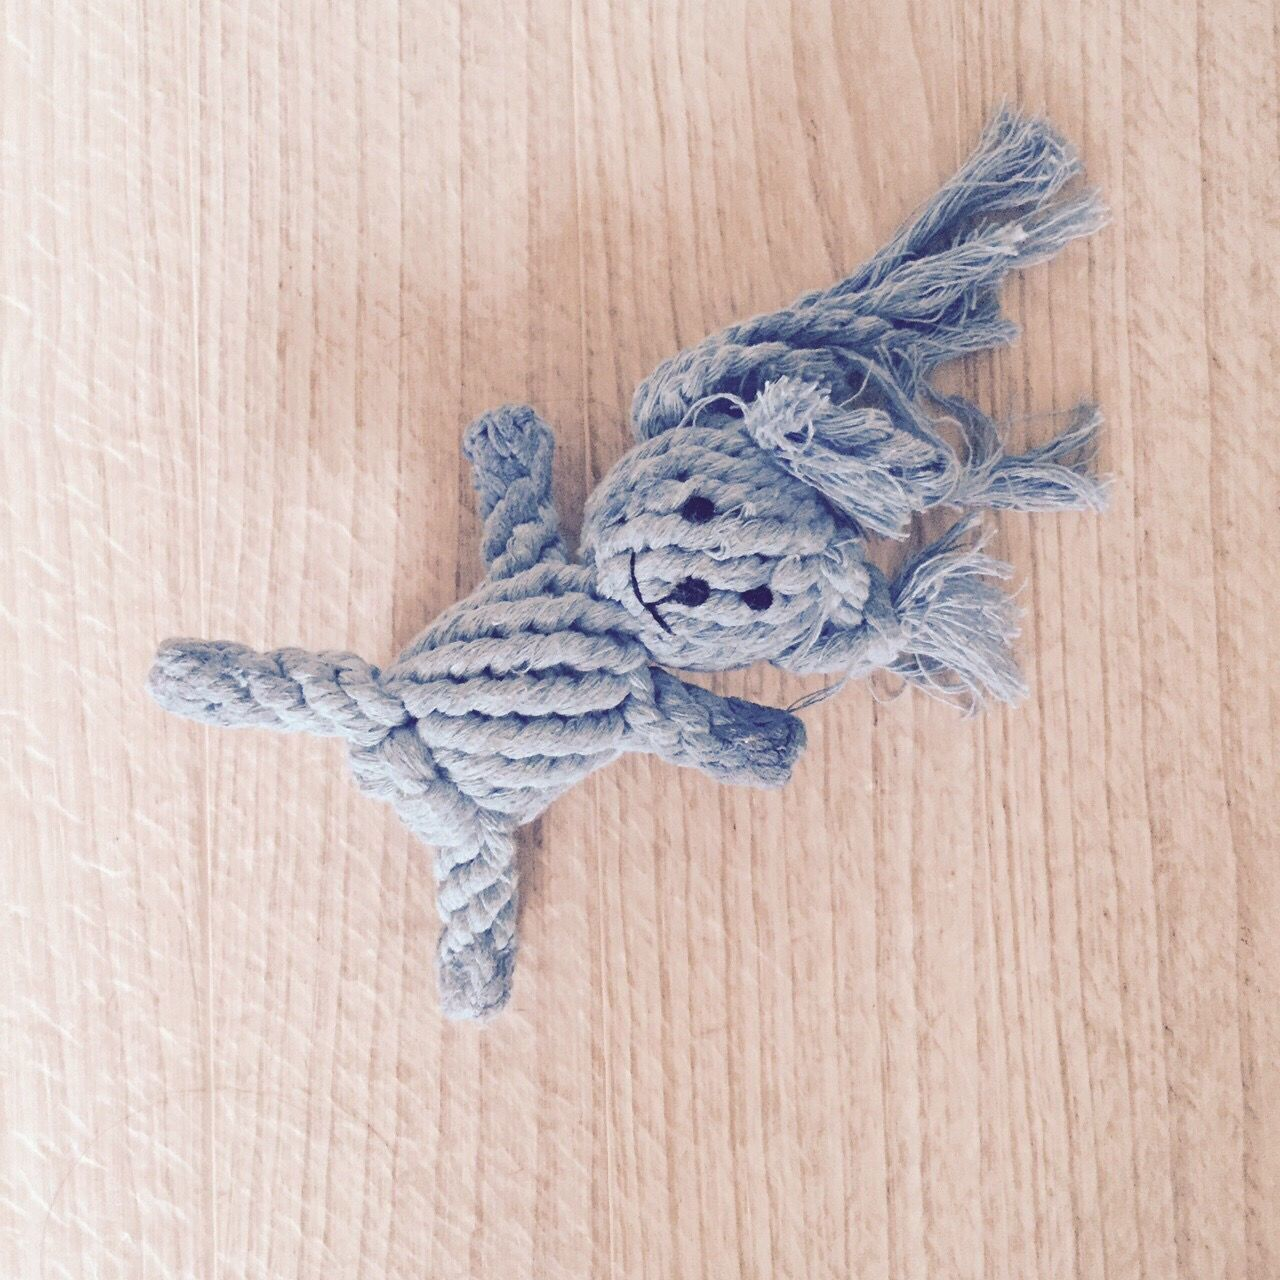 Directly Above Shot Of Knitted Teddy Bear On Table